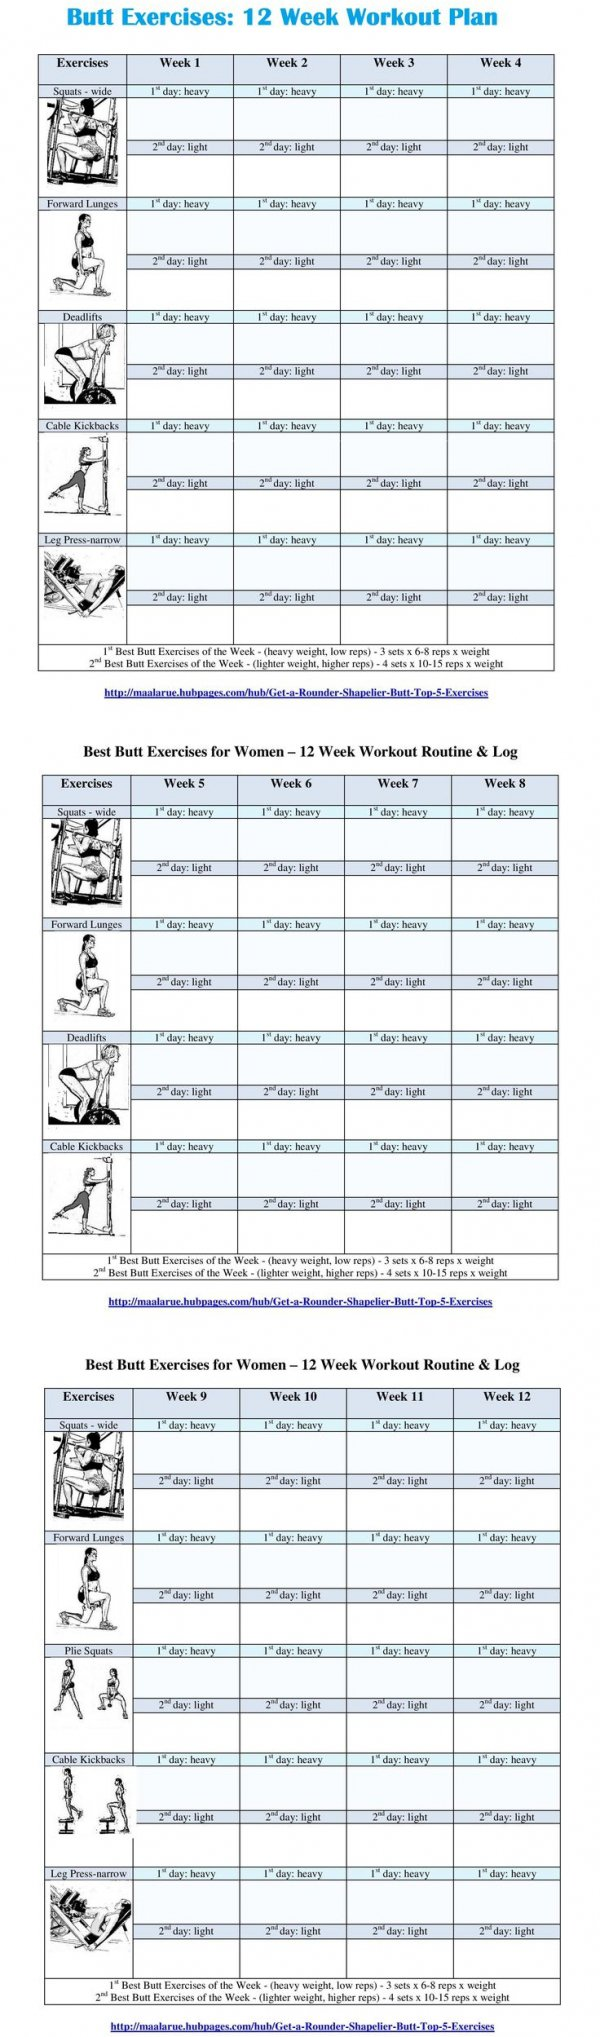 12 Week Butt Exercise Routine